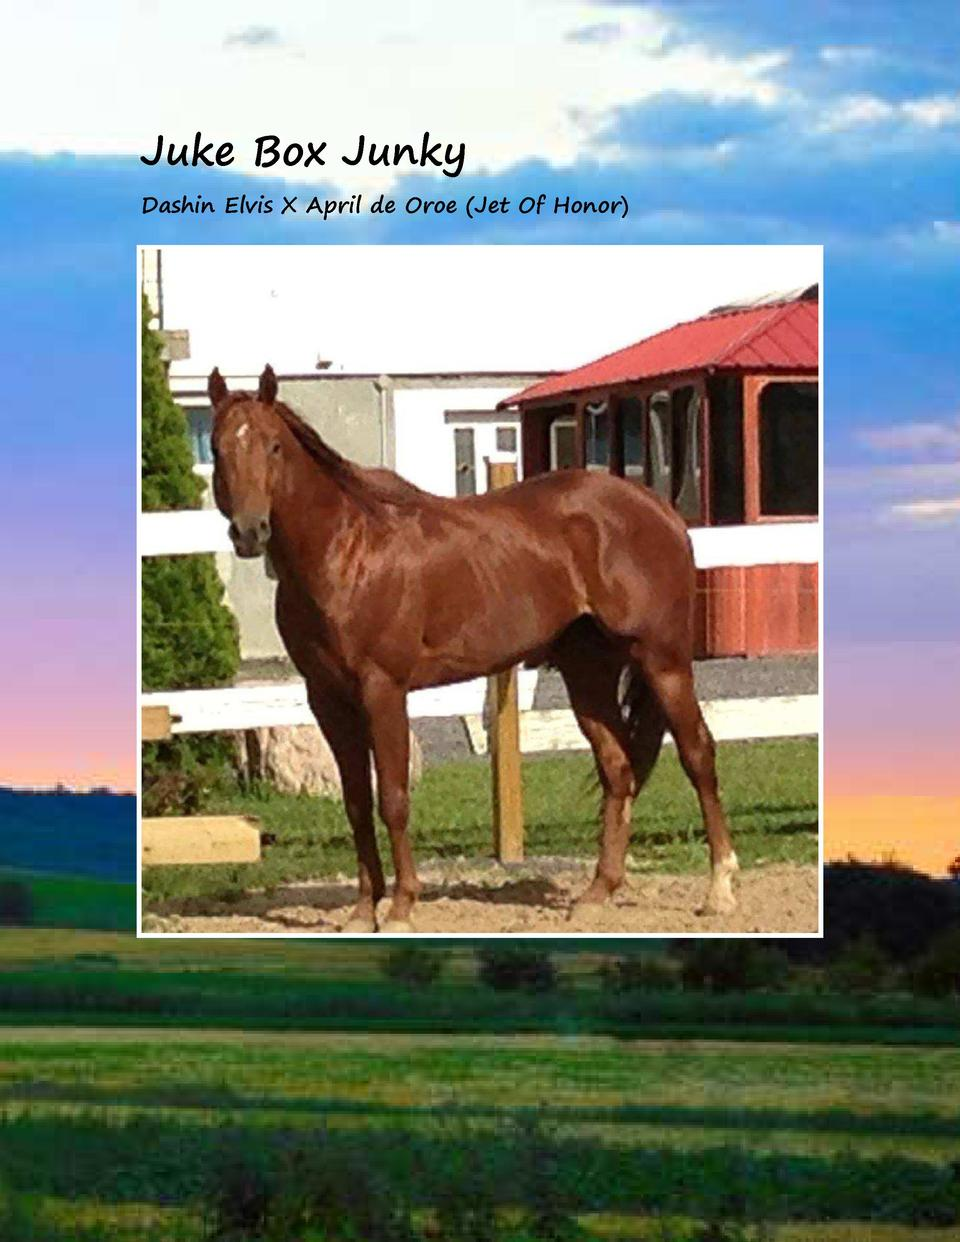 Juke Box Junky Dashin Elvis X April de Oroe  Jet Of Honor